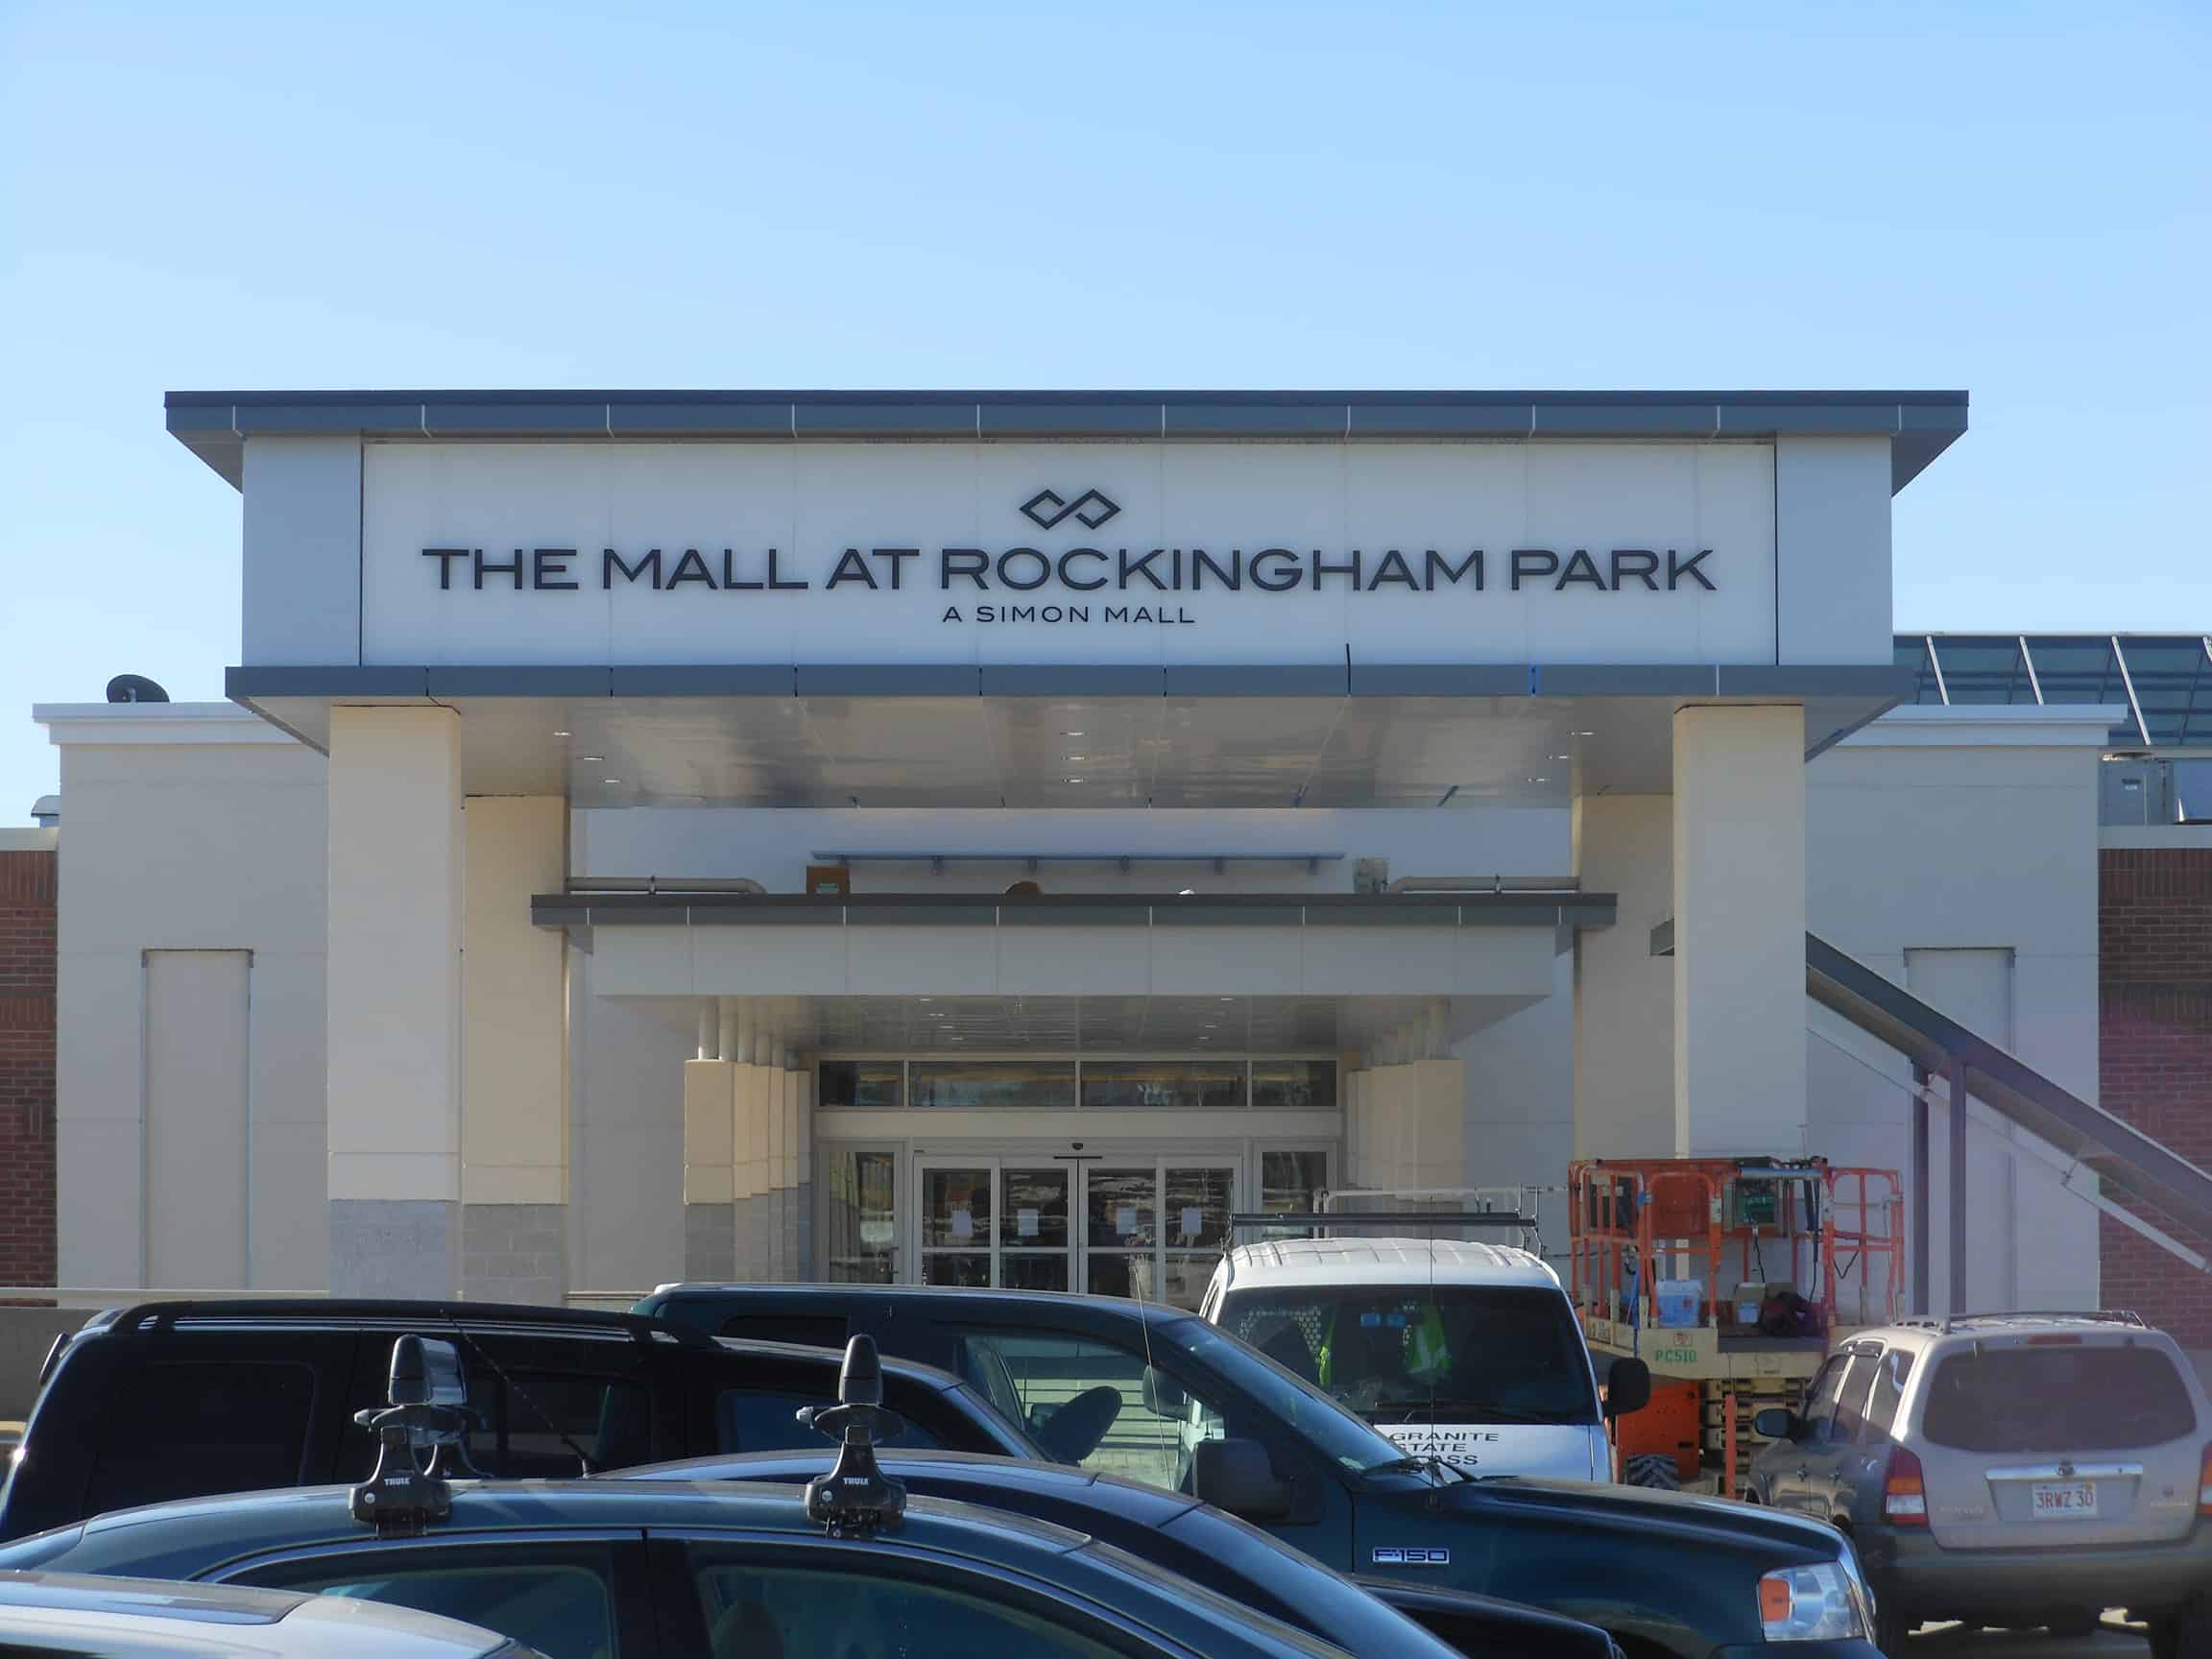 The Mall at Rockingham Park 3